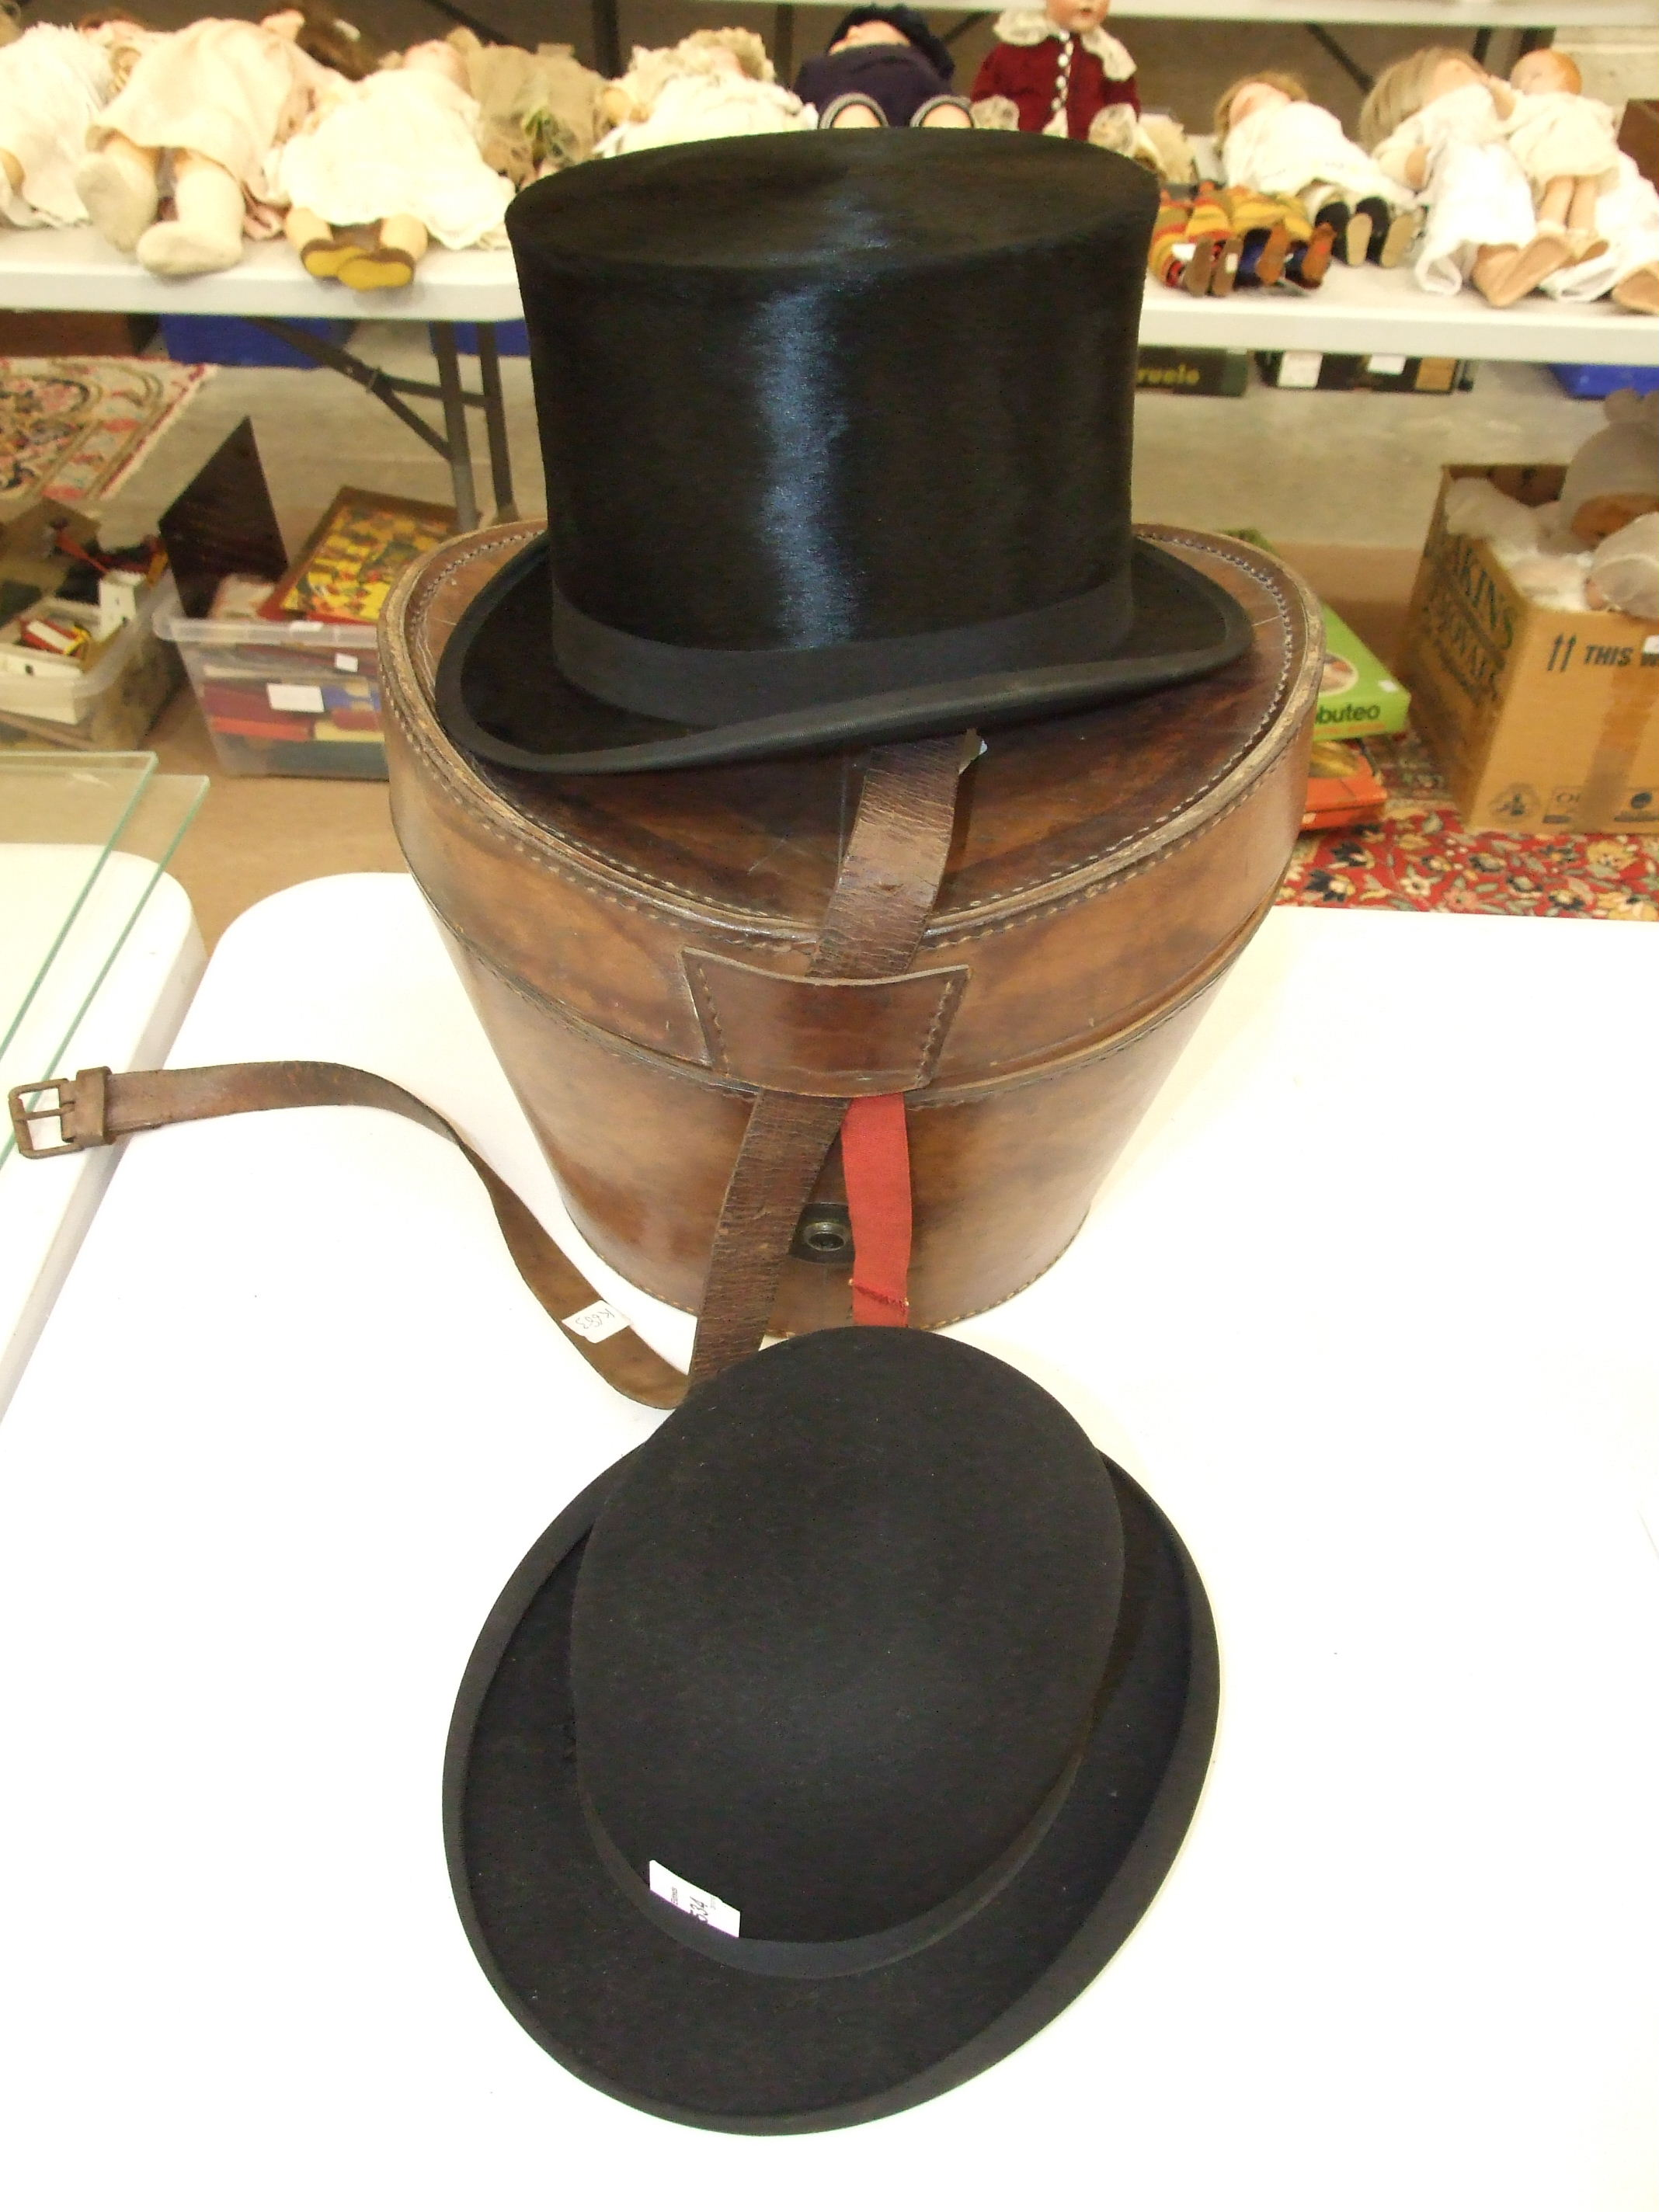 Lot 534 - An Isaac & Sons, Bath, all-fur top hat, approximate size 7¼, in Victorian leather hat box and a